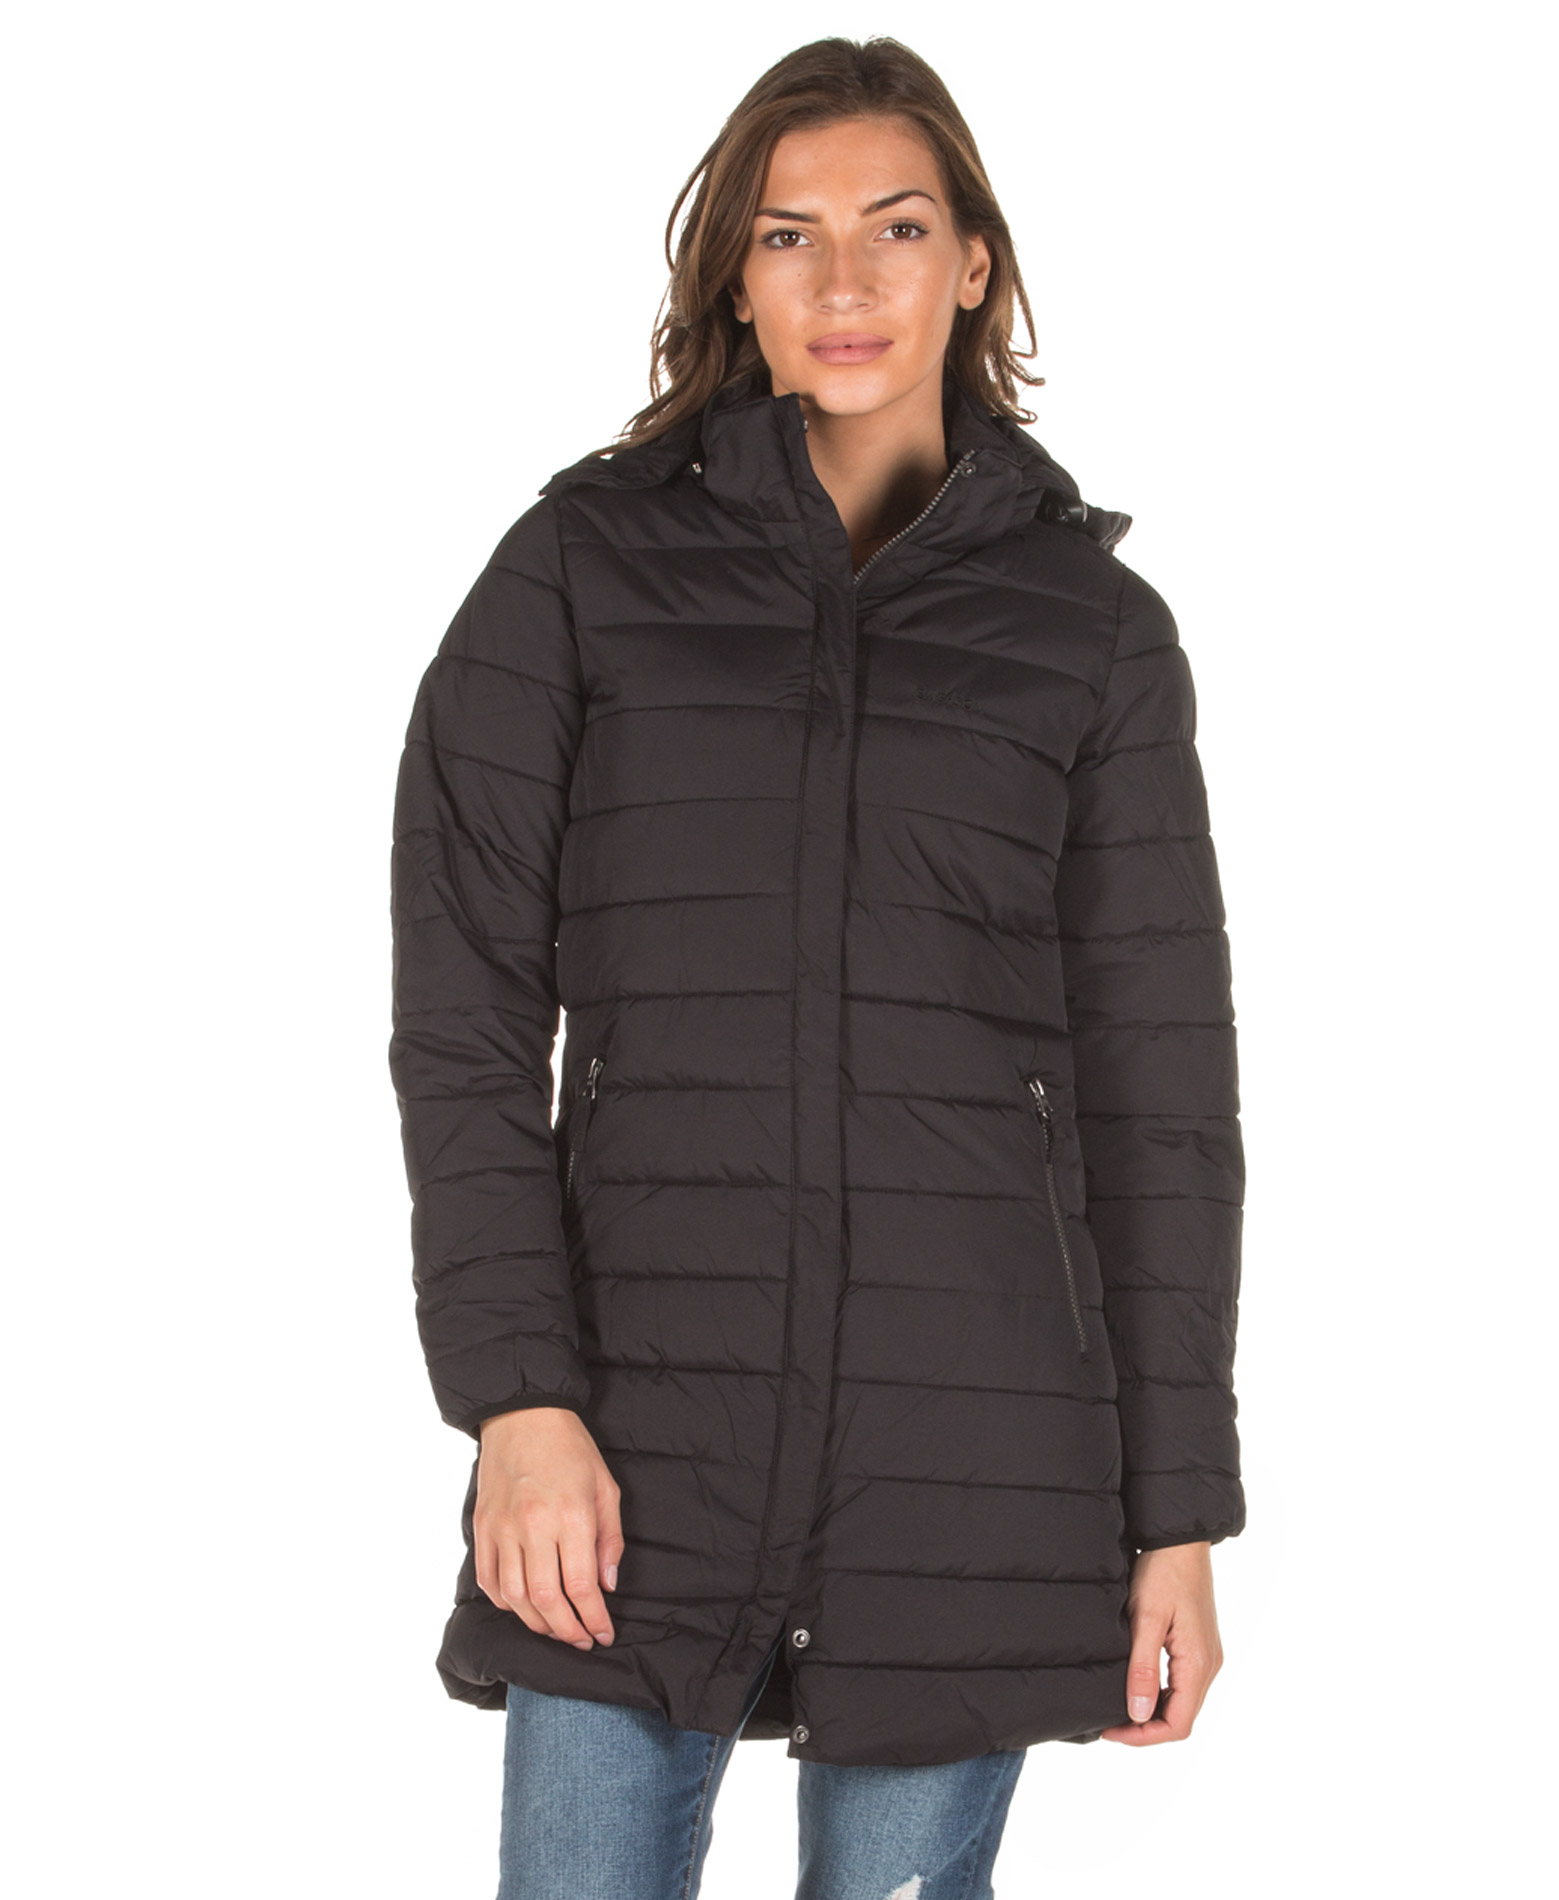 EMERSON DETACHABLE HOOD FAKE DOWN QUILTED LONG JACKET 192.EW10.82-RPS OFF BLACK Μαύρο